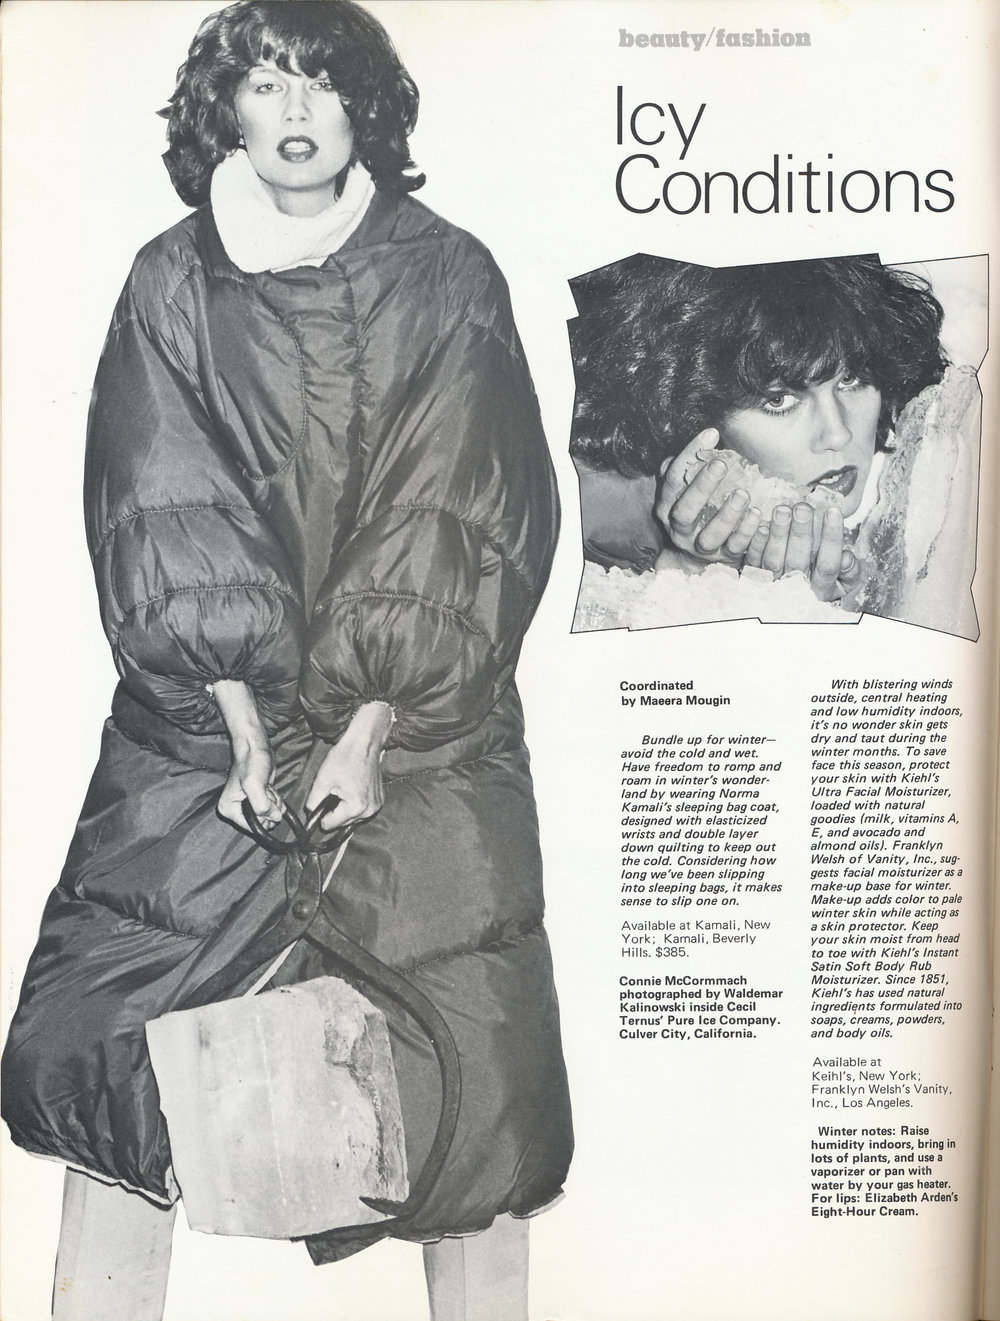 Norma Kamali's iconic sleeping bag coat in Wet, January/February 1978.